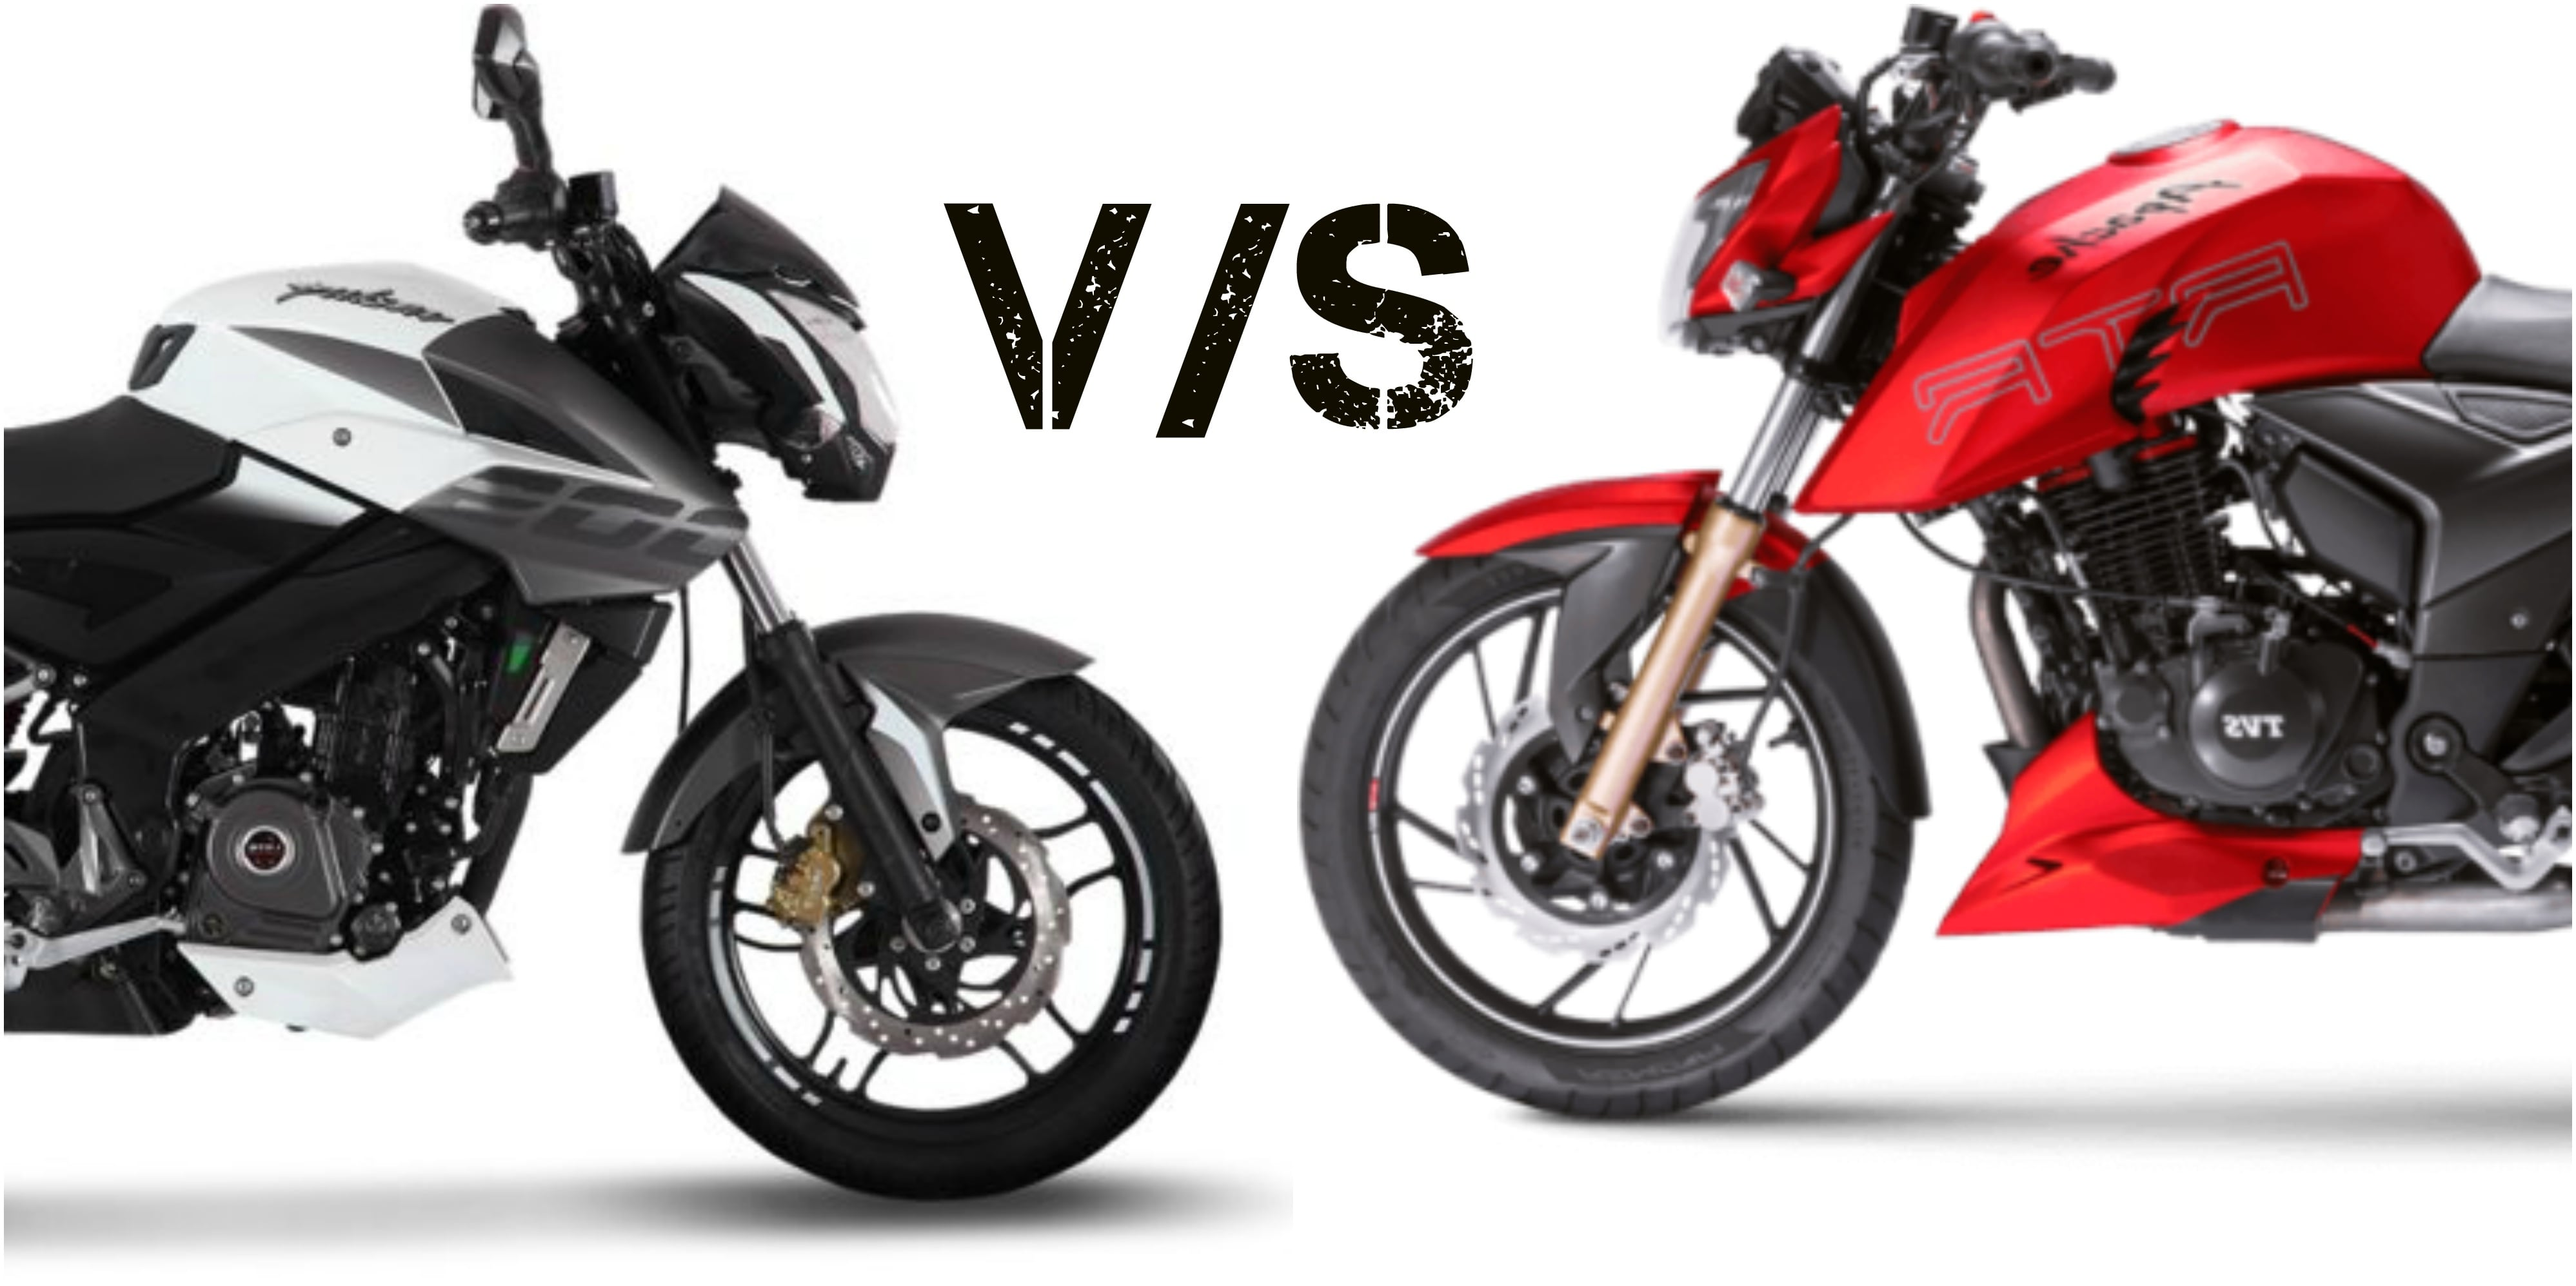 Brilliant Tvs Apache Rtr 200 4V Vs Bajaj Pulsar Ns200 Specs Comparison Gmtry Best Dining Table And Chair Ideas Images Gmtryco